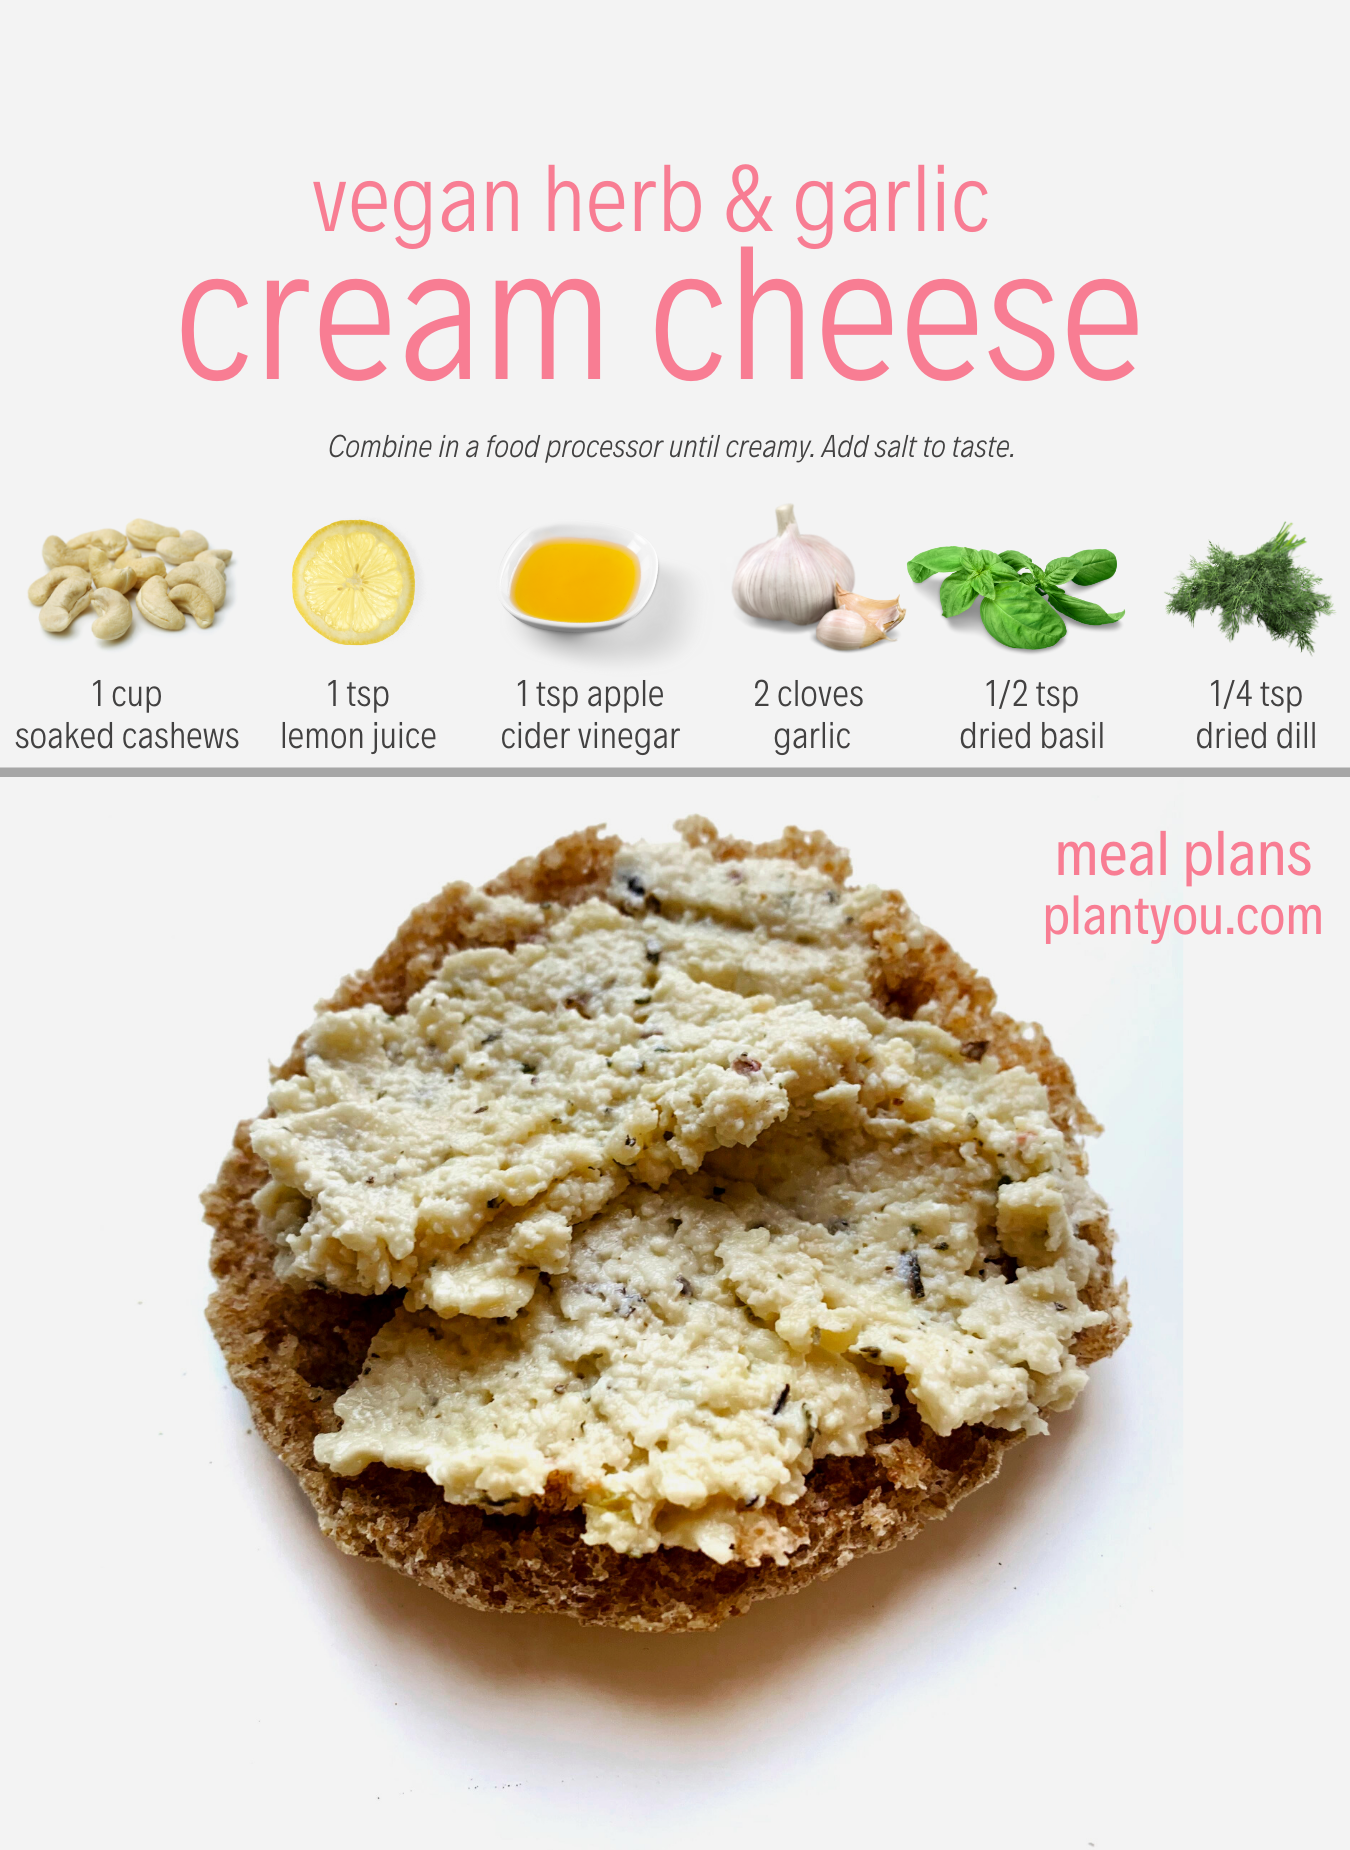 Vegan Herb Garlic Cream Cheese Vegan Cream Cheese Recipe Vegan Bagel Cream Cheese Vegan Snacks Easy Food Processor Recipes Vegan Cheese Recipes